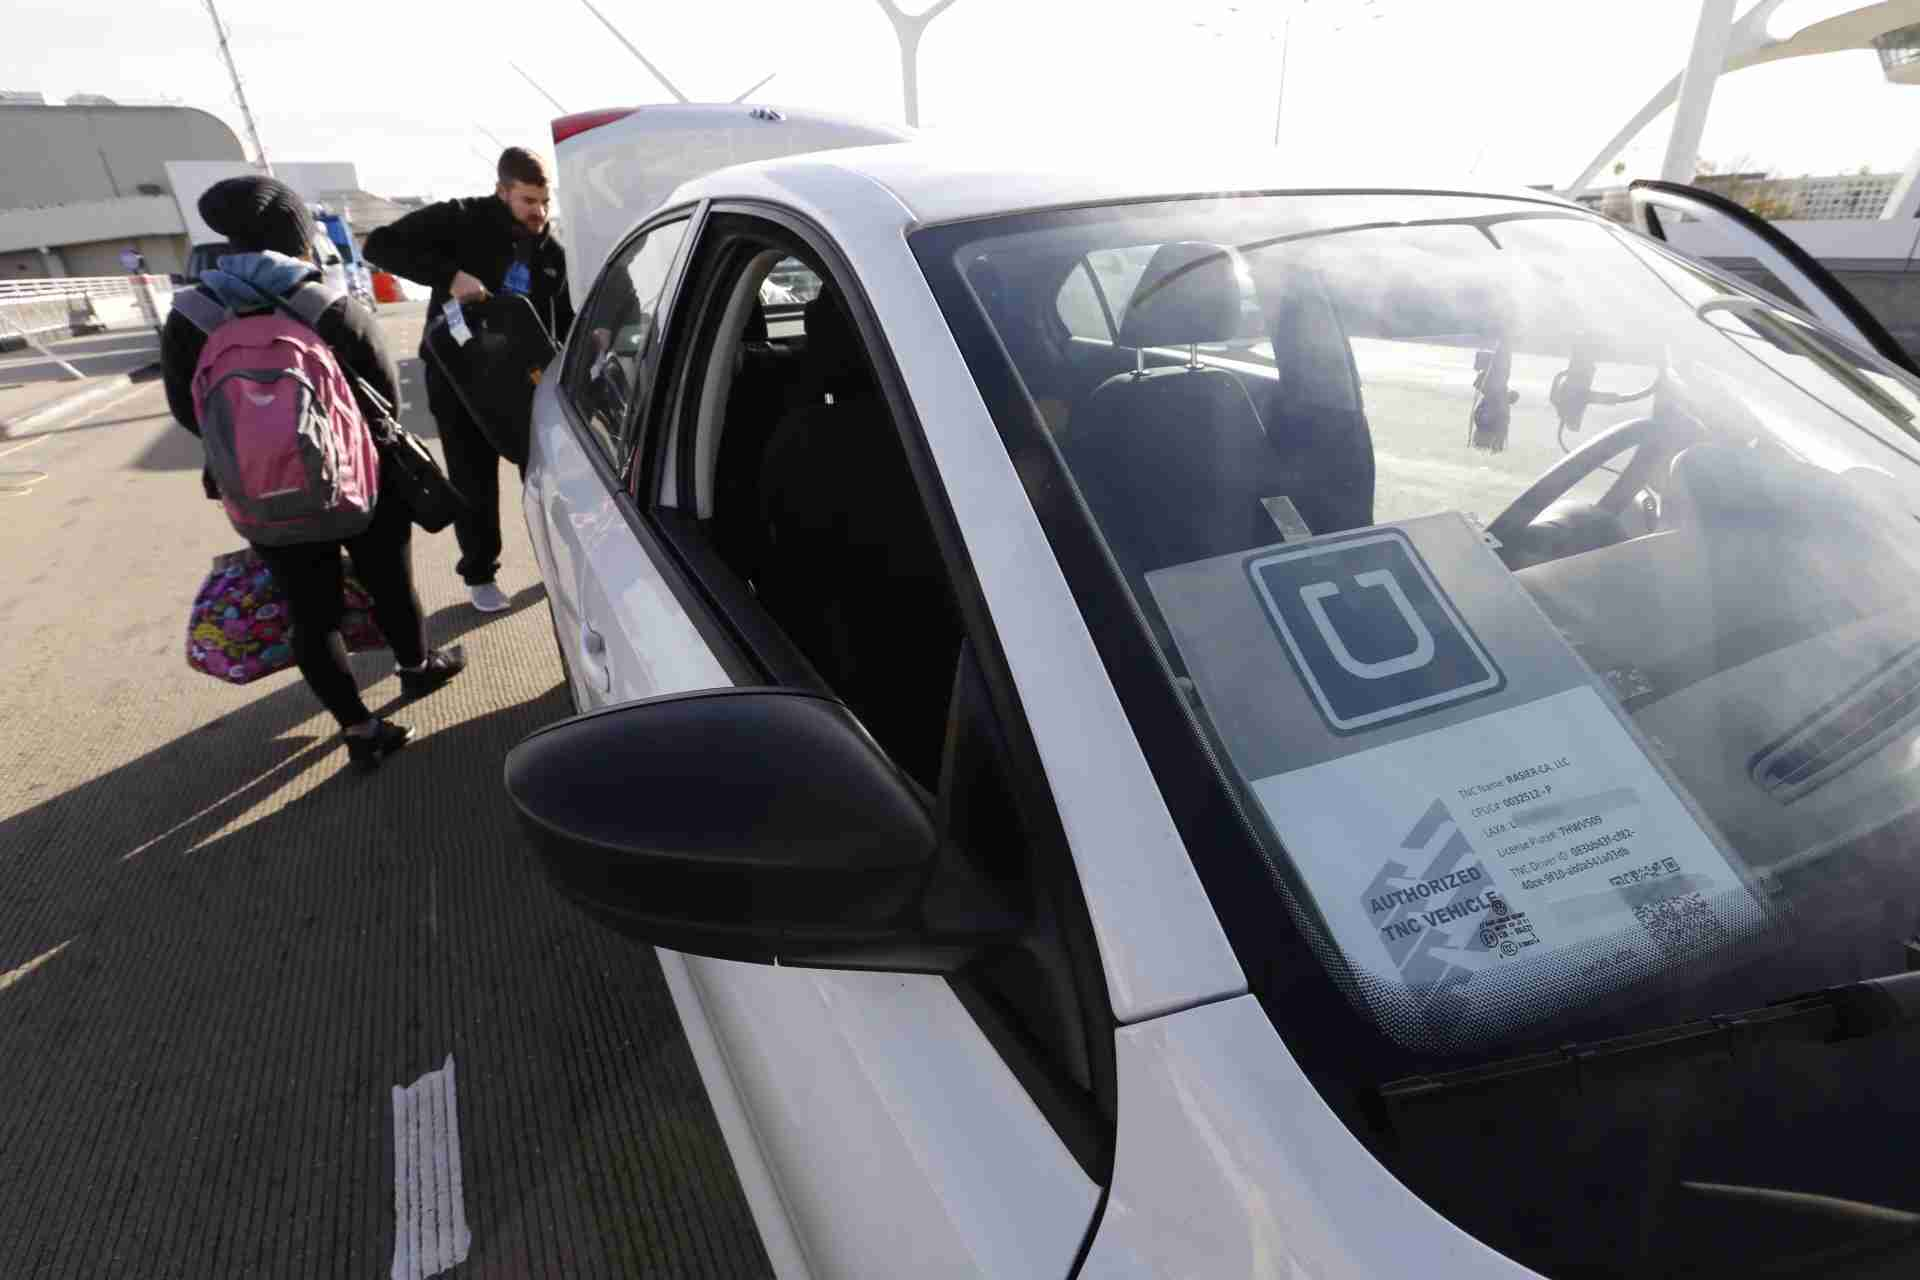 LOS ANGELES, CA - JANUARY 21: Kevin Bonsignore and Danni Clay from Kansas City catch their UberX ride as UberX begins making passenger pickups at Los Angeles International Airport on January 21, 2016 in Los Angeles, California. UberX joins competing service Lyft as the only such services offering pickups at LAX. (Photo by Al Seib / Los Angeles Times via Getty Images)